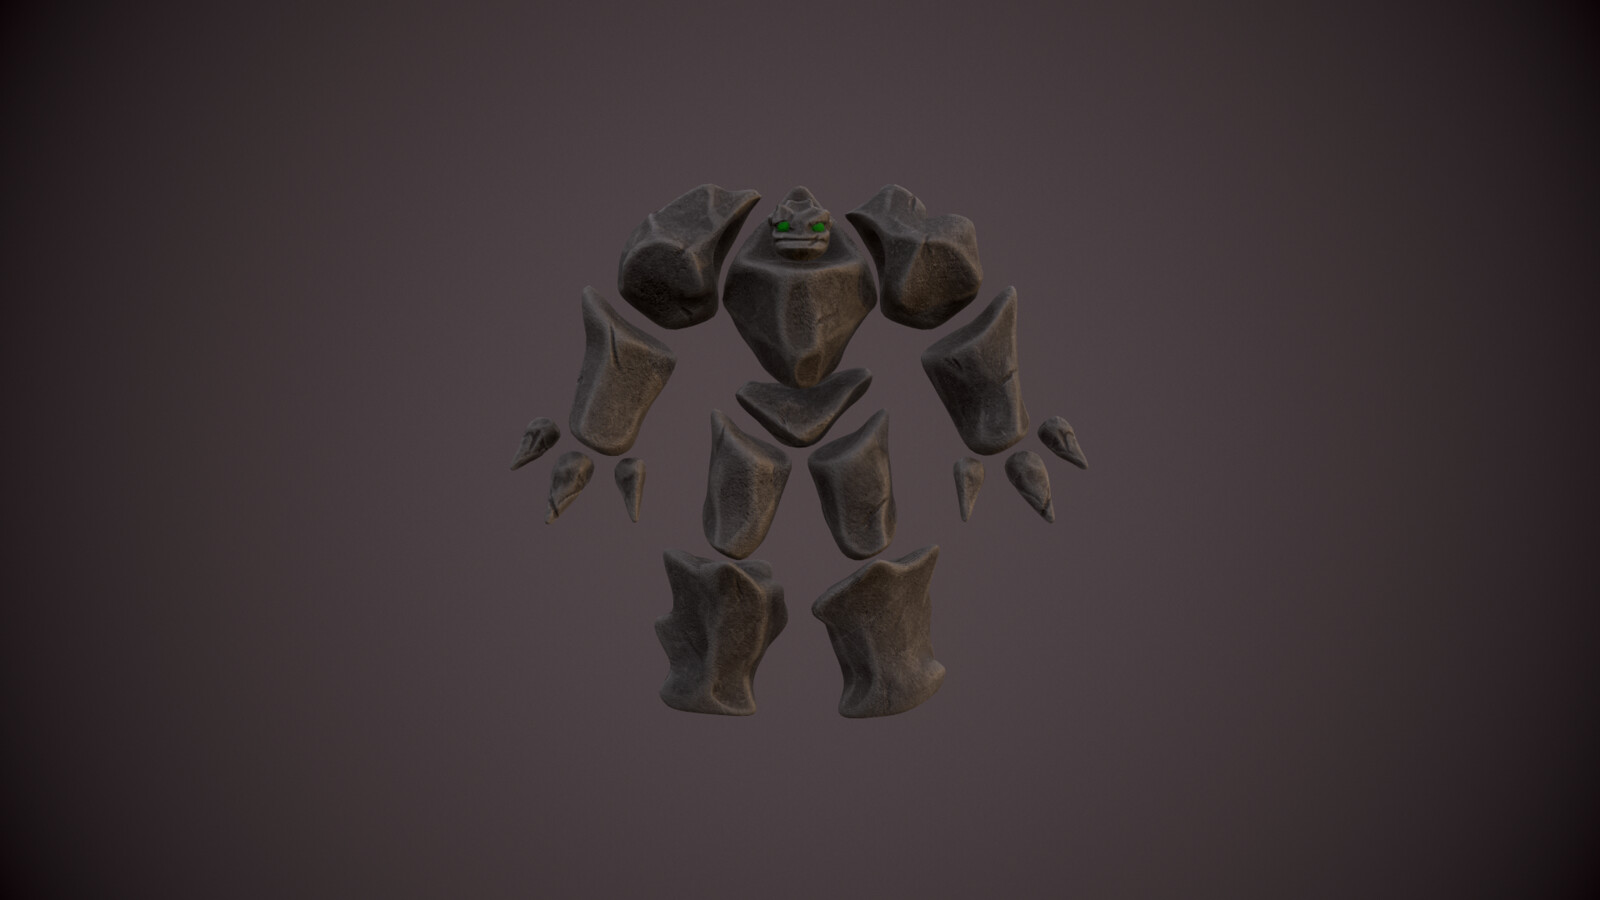 Original earth elemental enemy front view. We decided to make the game feel more cartoony, so ended up going a different route with this enemy.